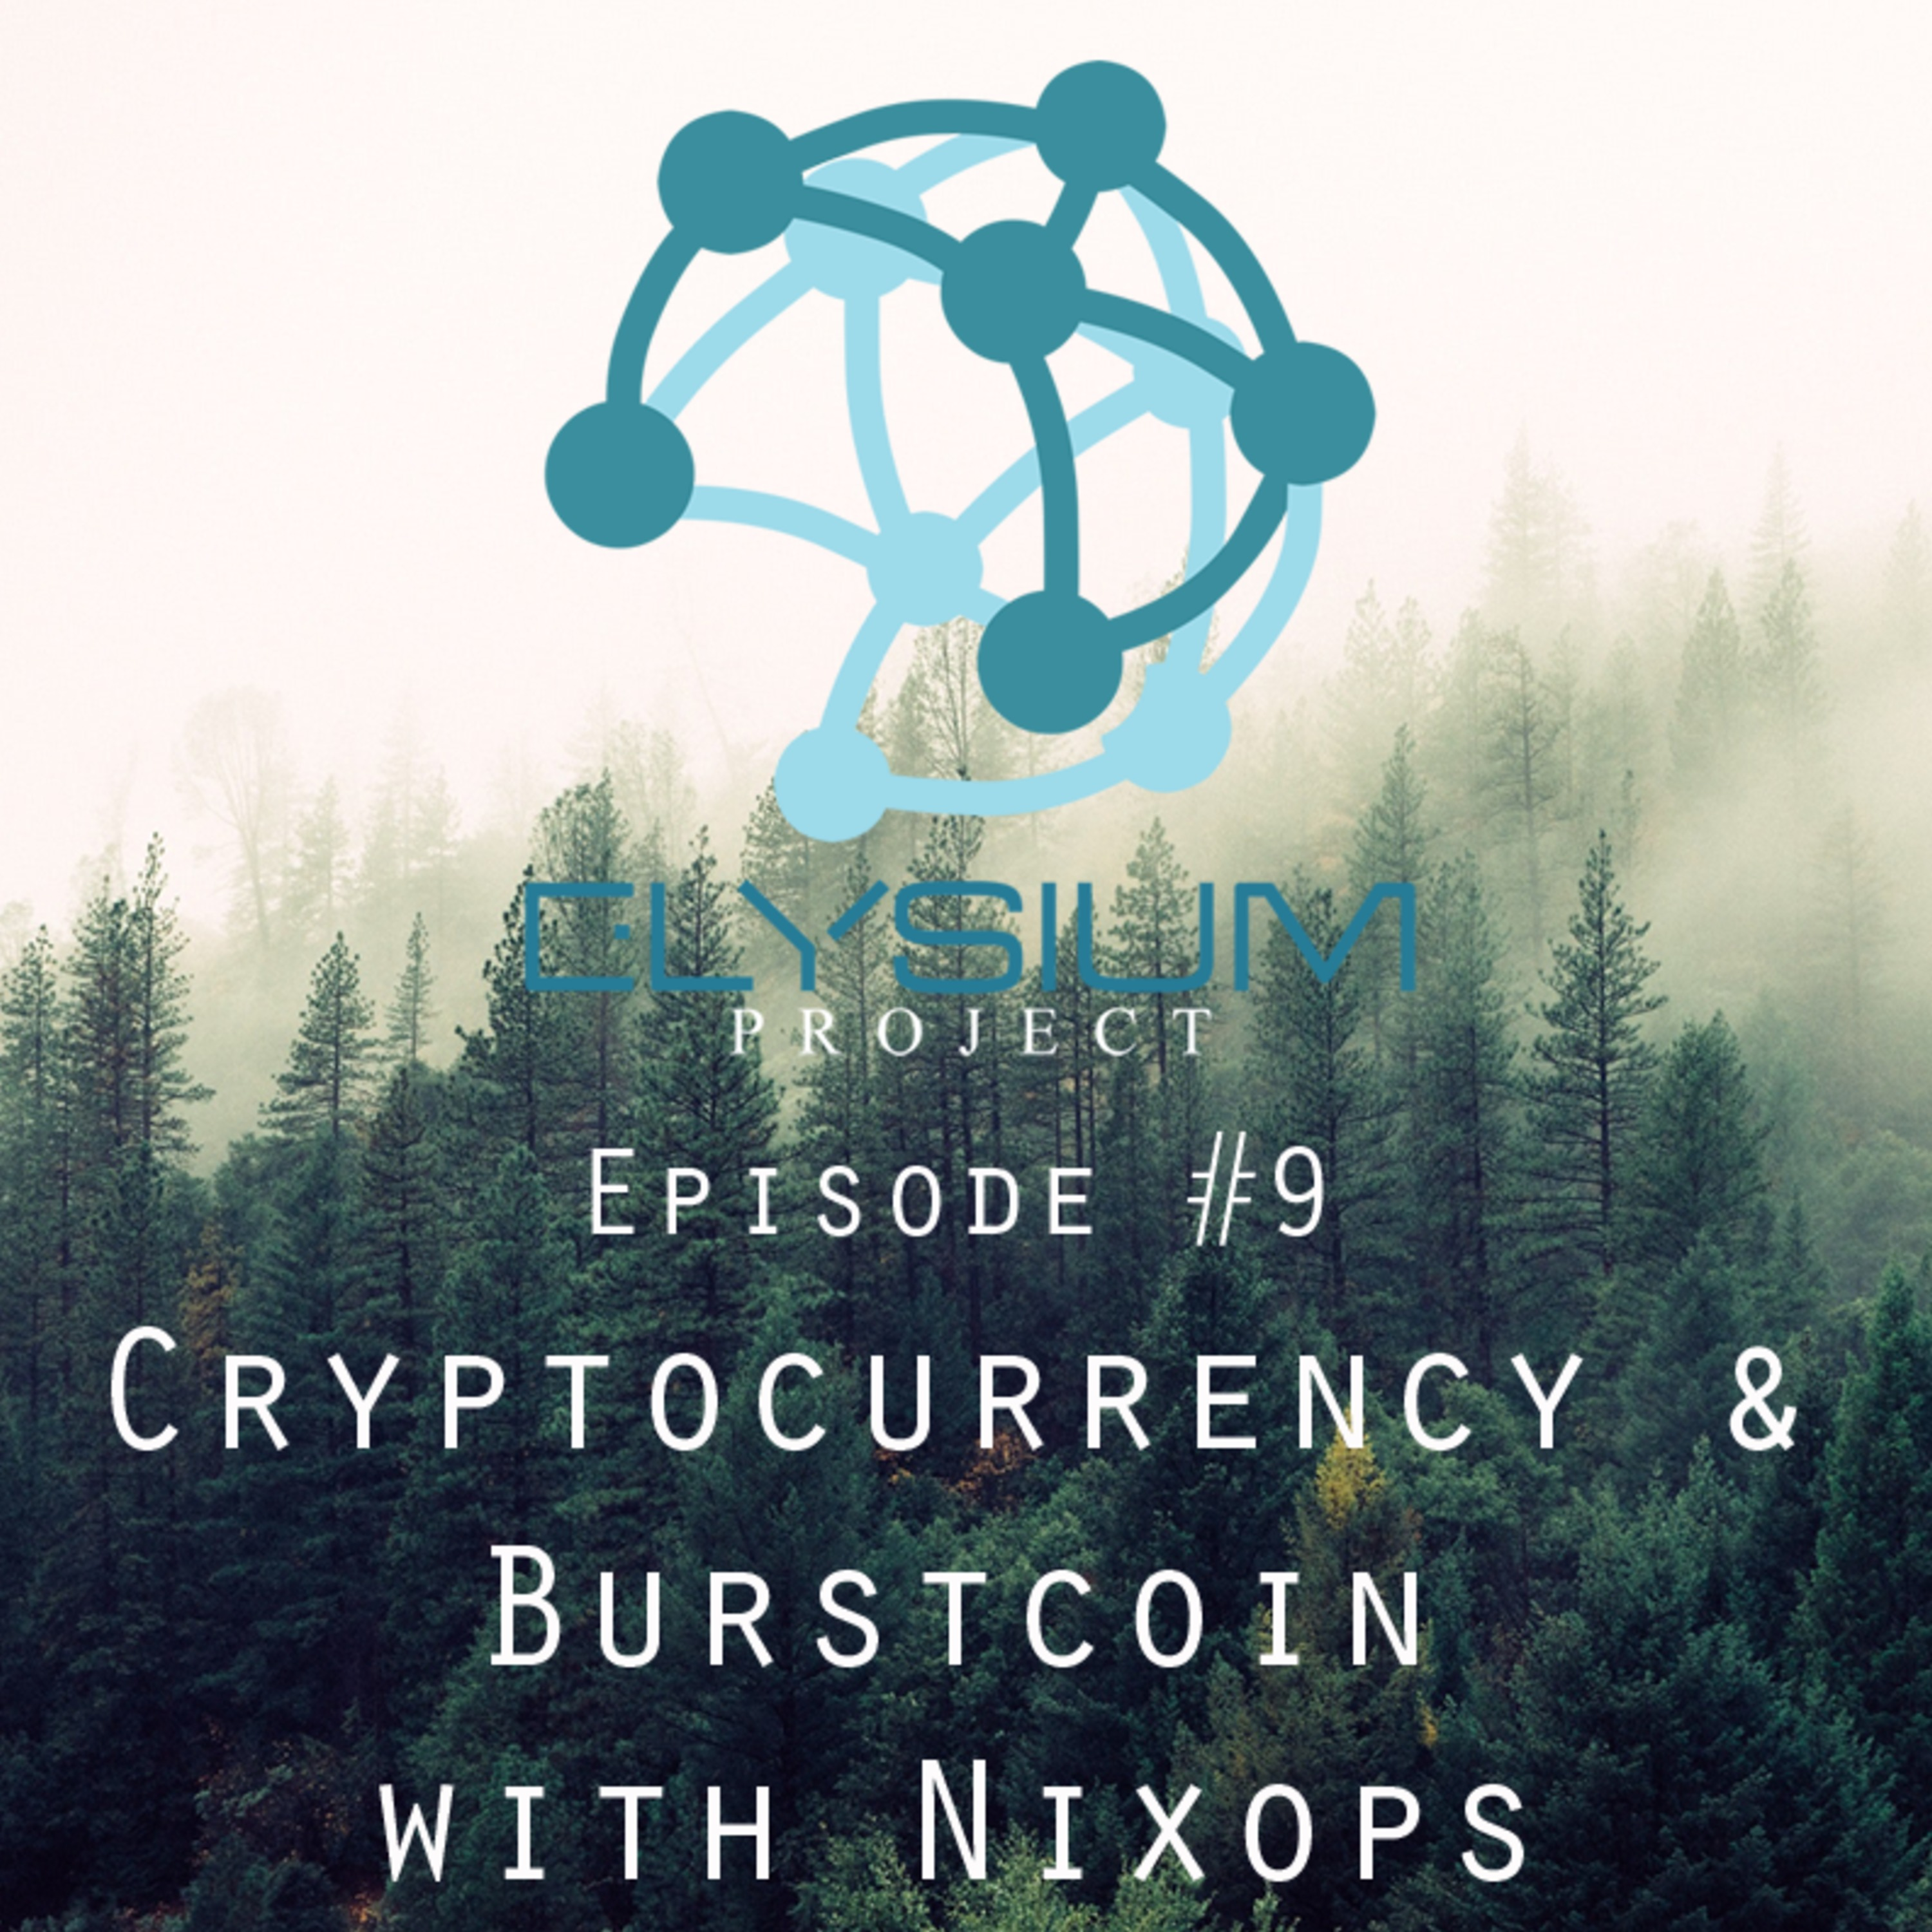 Episode 9: Cryptocurrency and Burstcoin with Nixops